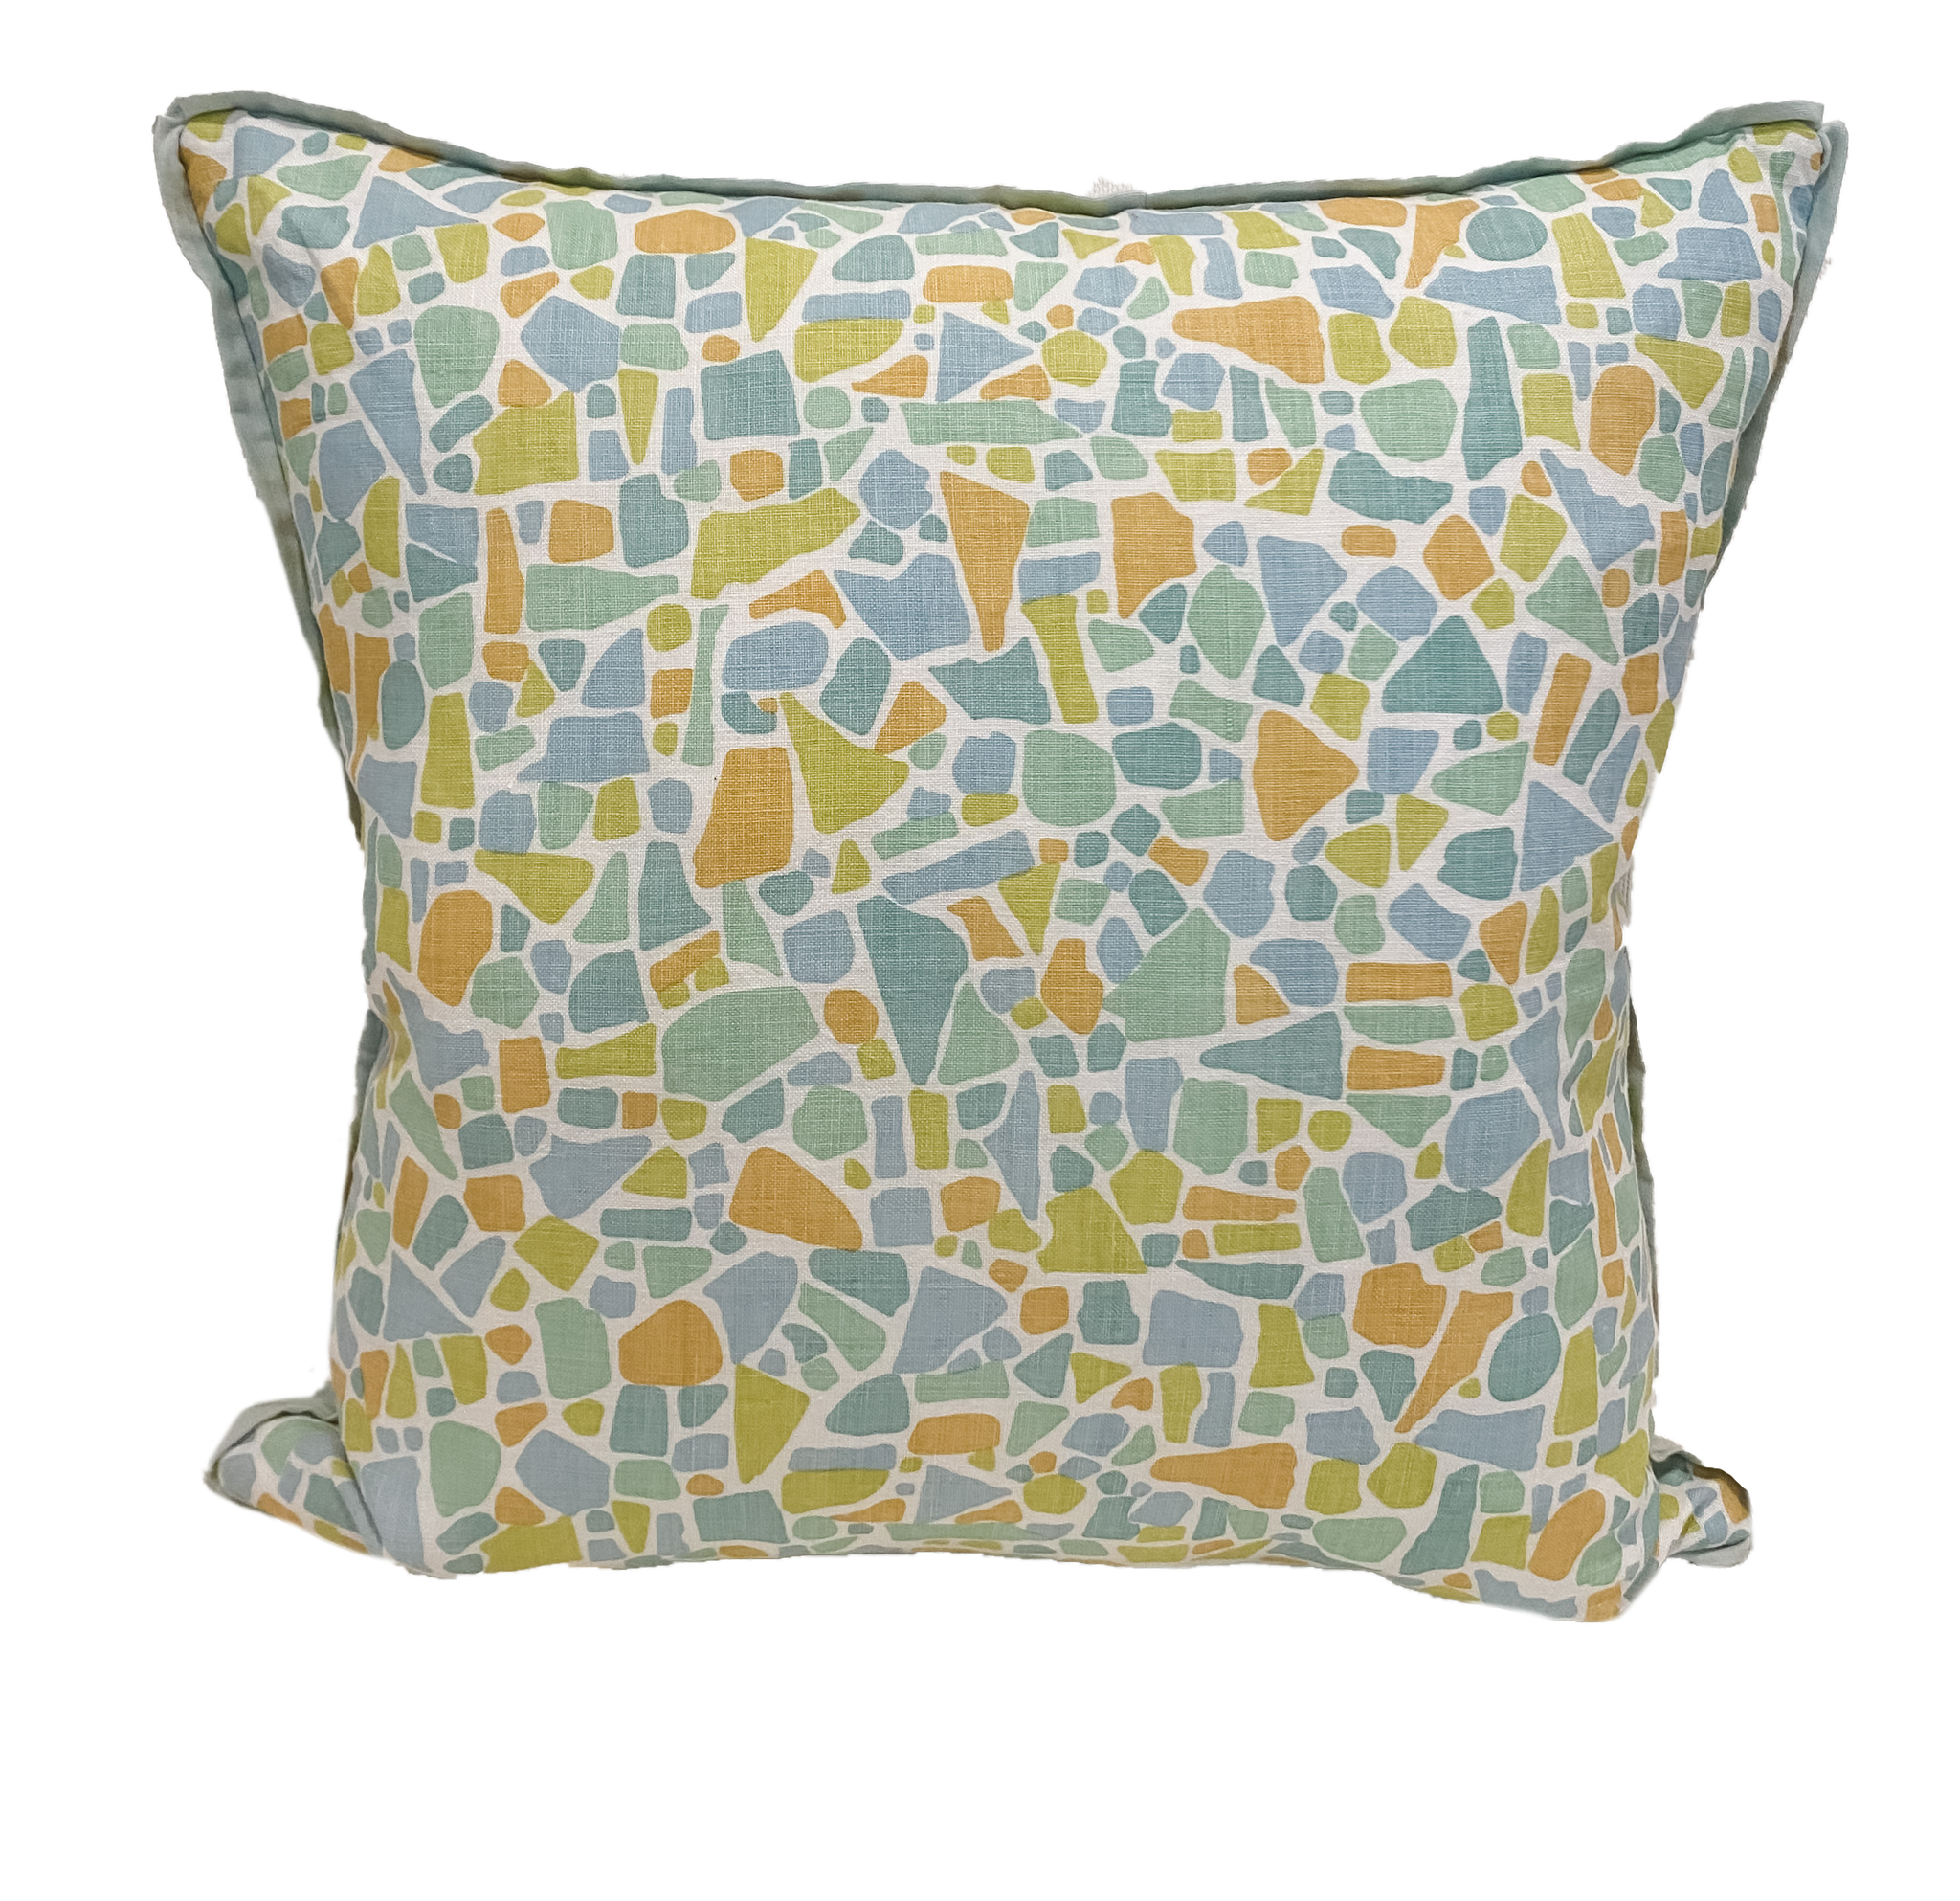 Abstract Linen Print Pillows - Amy Berry Home